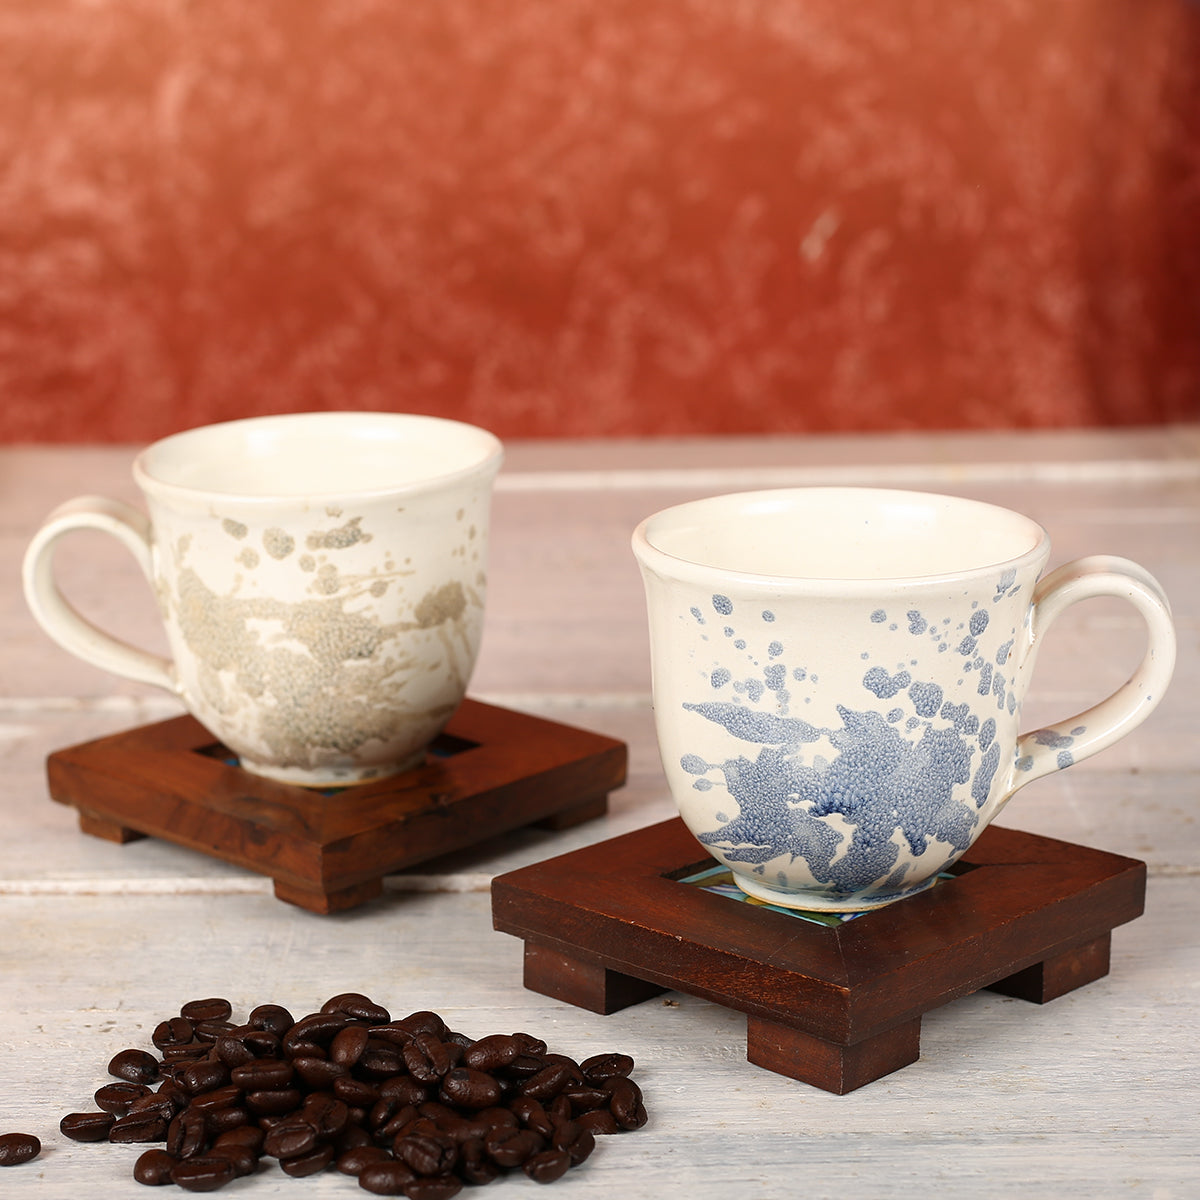 Abstract Off White with Blue Brown Handmade Ceramic Cups from Pondicherry - Set of 2